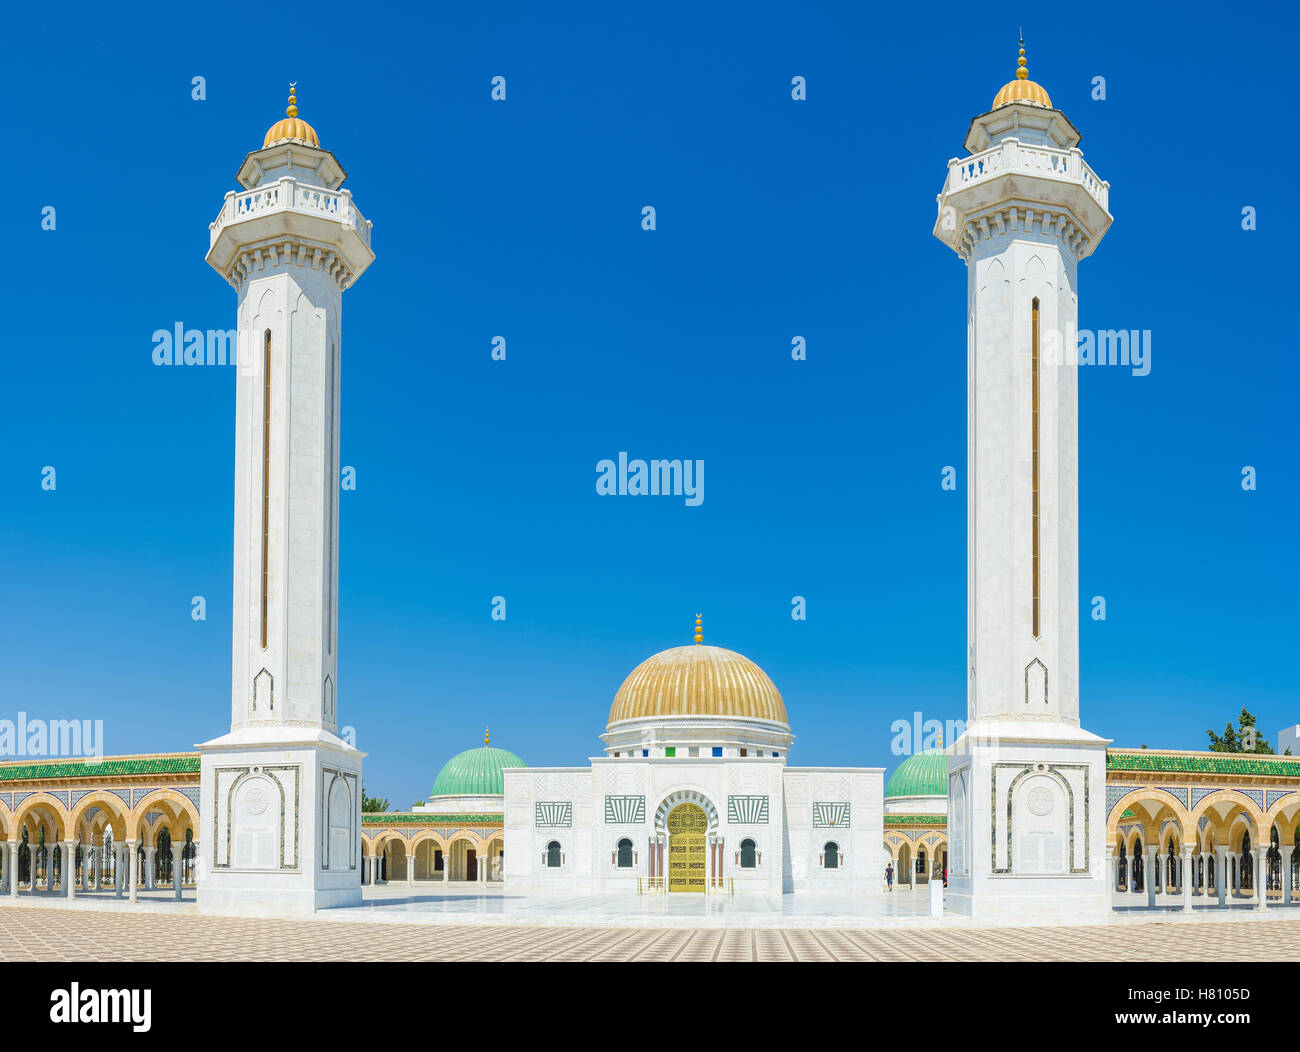 The mausoleum of Habib Bourgiba is the famous landmark and one of the most visitable sights in Monastir, Tunisia. - Stock Image